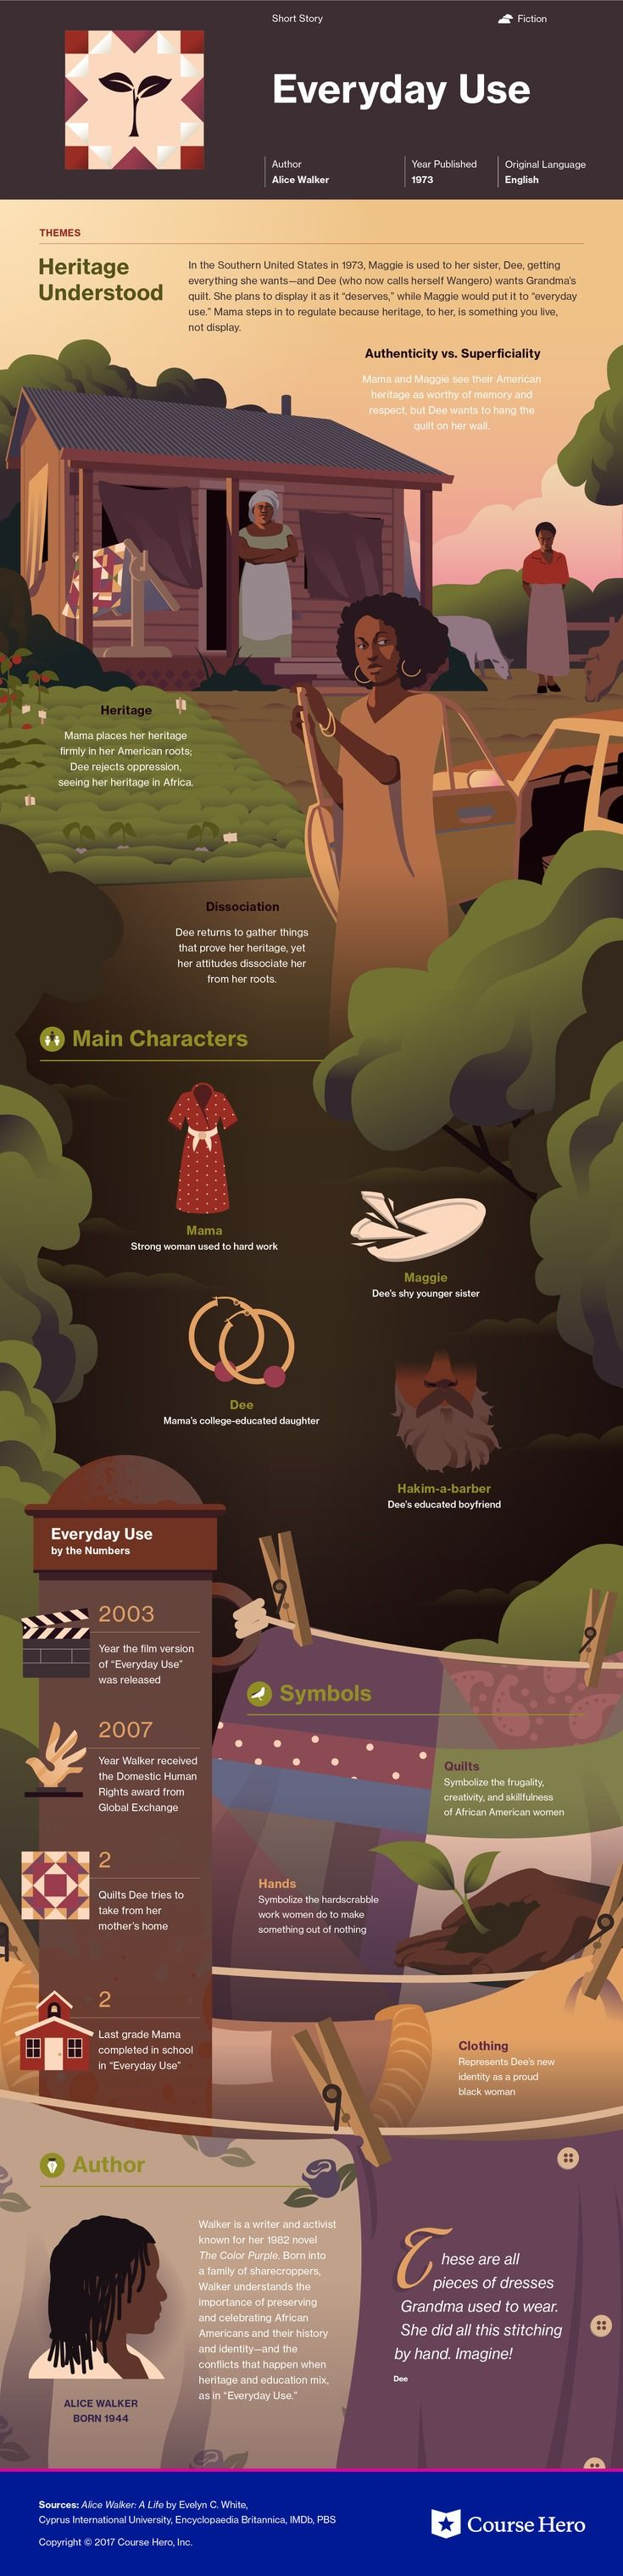 best ideas about alice walker future quotes alice walker s everyday use infographic course hero coursehero